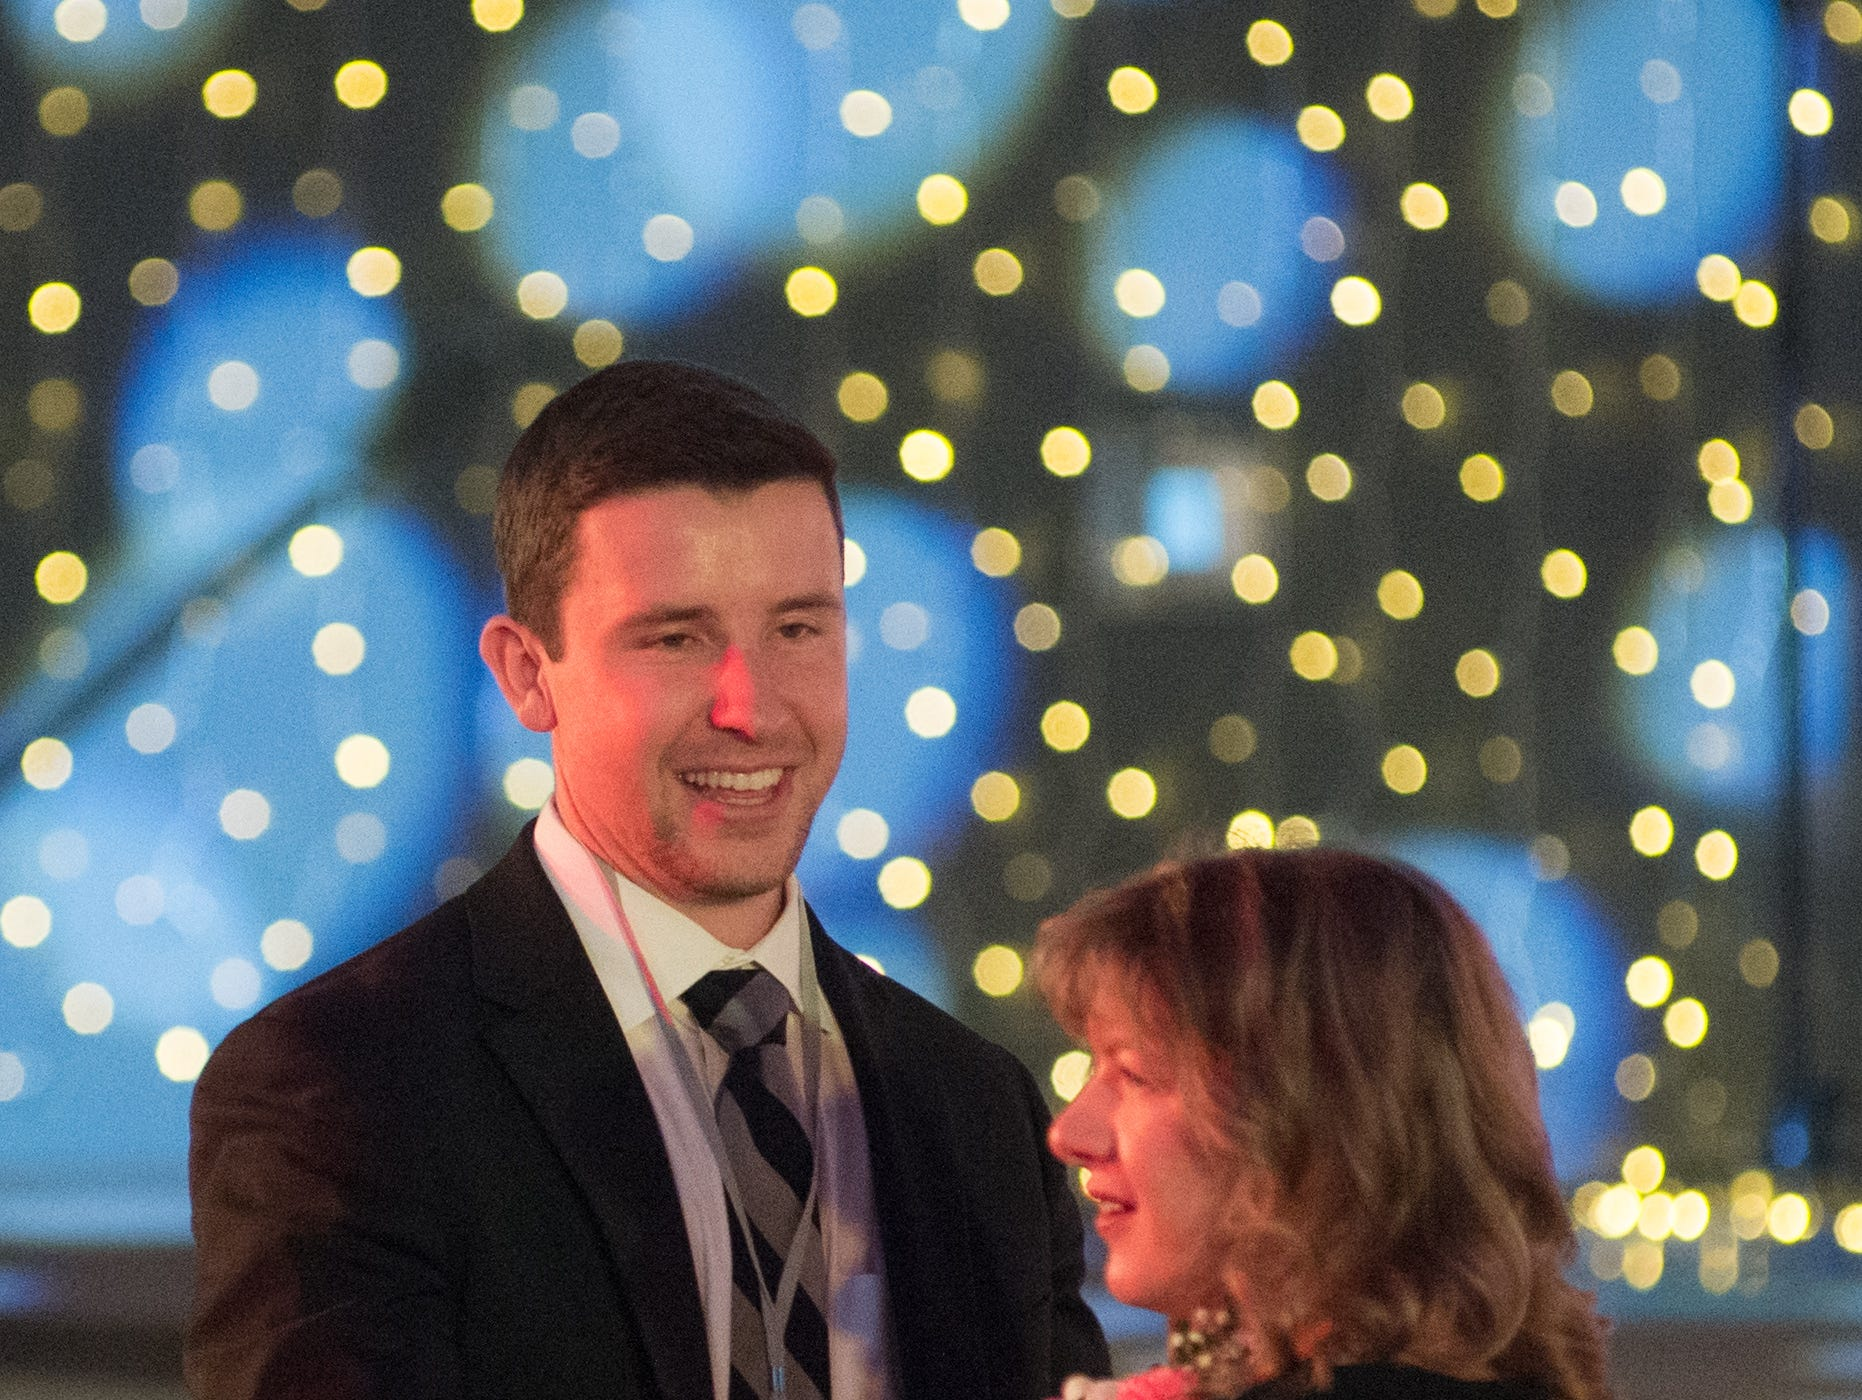 Attendees of the Night to Shine event dance the evening away at NorthField Church in Gallatin on Friday, Feb, 8. The Night to Shine is a  prom night experience presented by Tim Tebow Foundation to celebrate God's love for people with special needs.